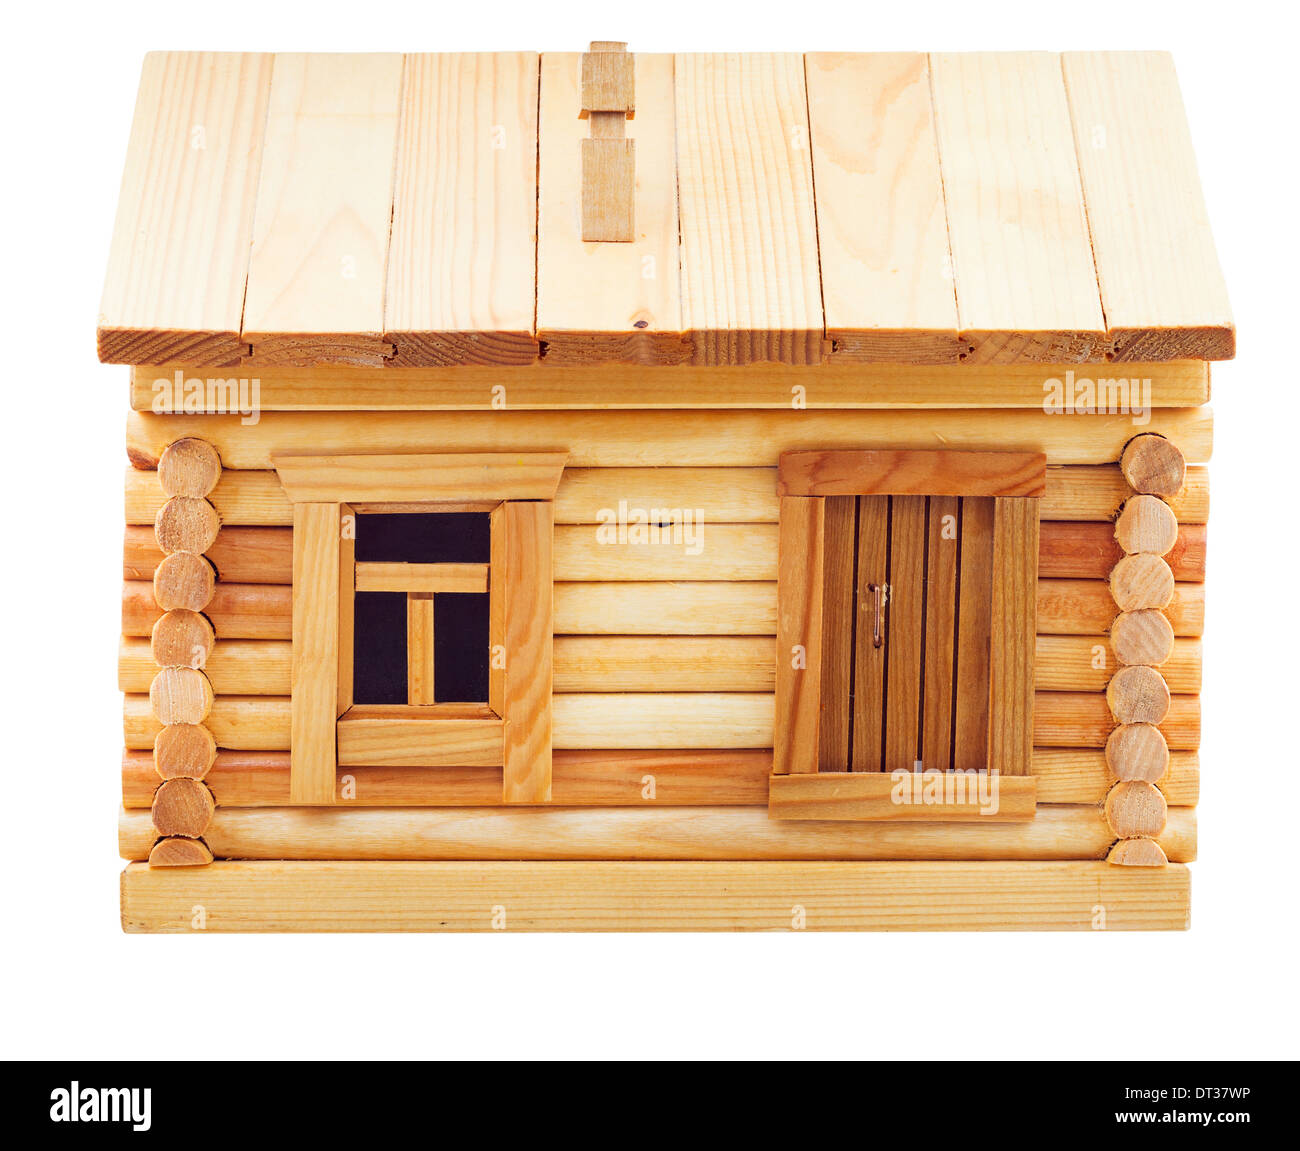 front view of simple village wooden log house isolated on white background - Stock Image